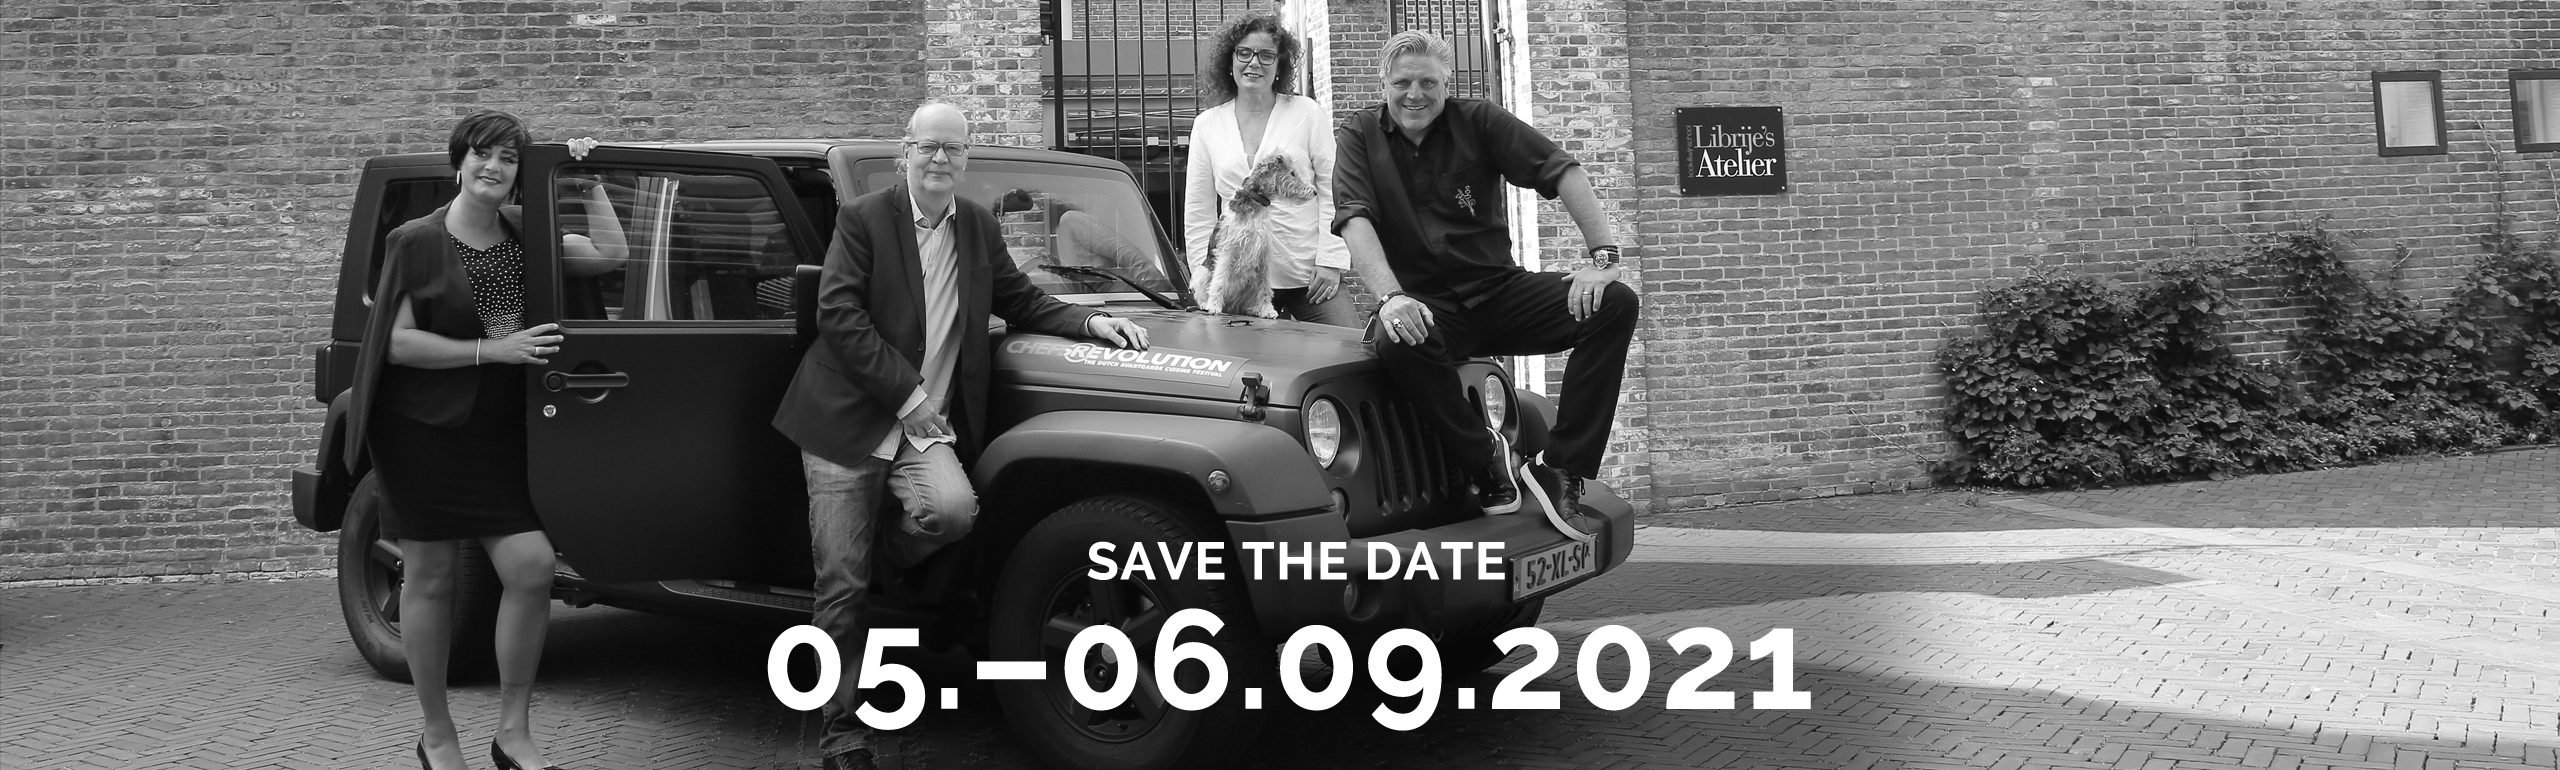 Save the Date 05.–06.09.2021